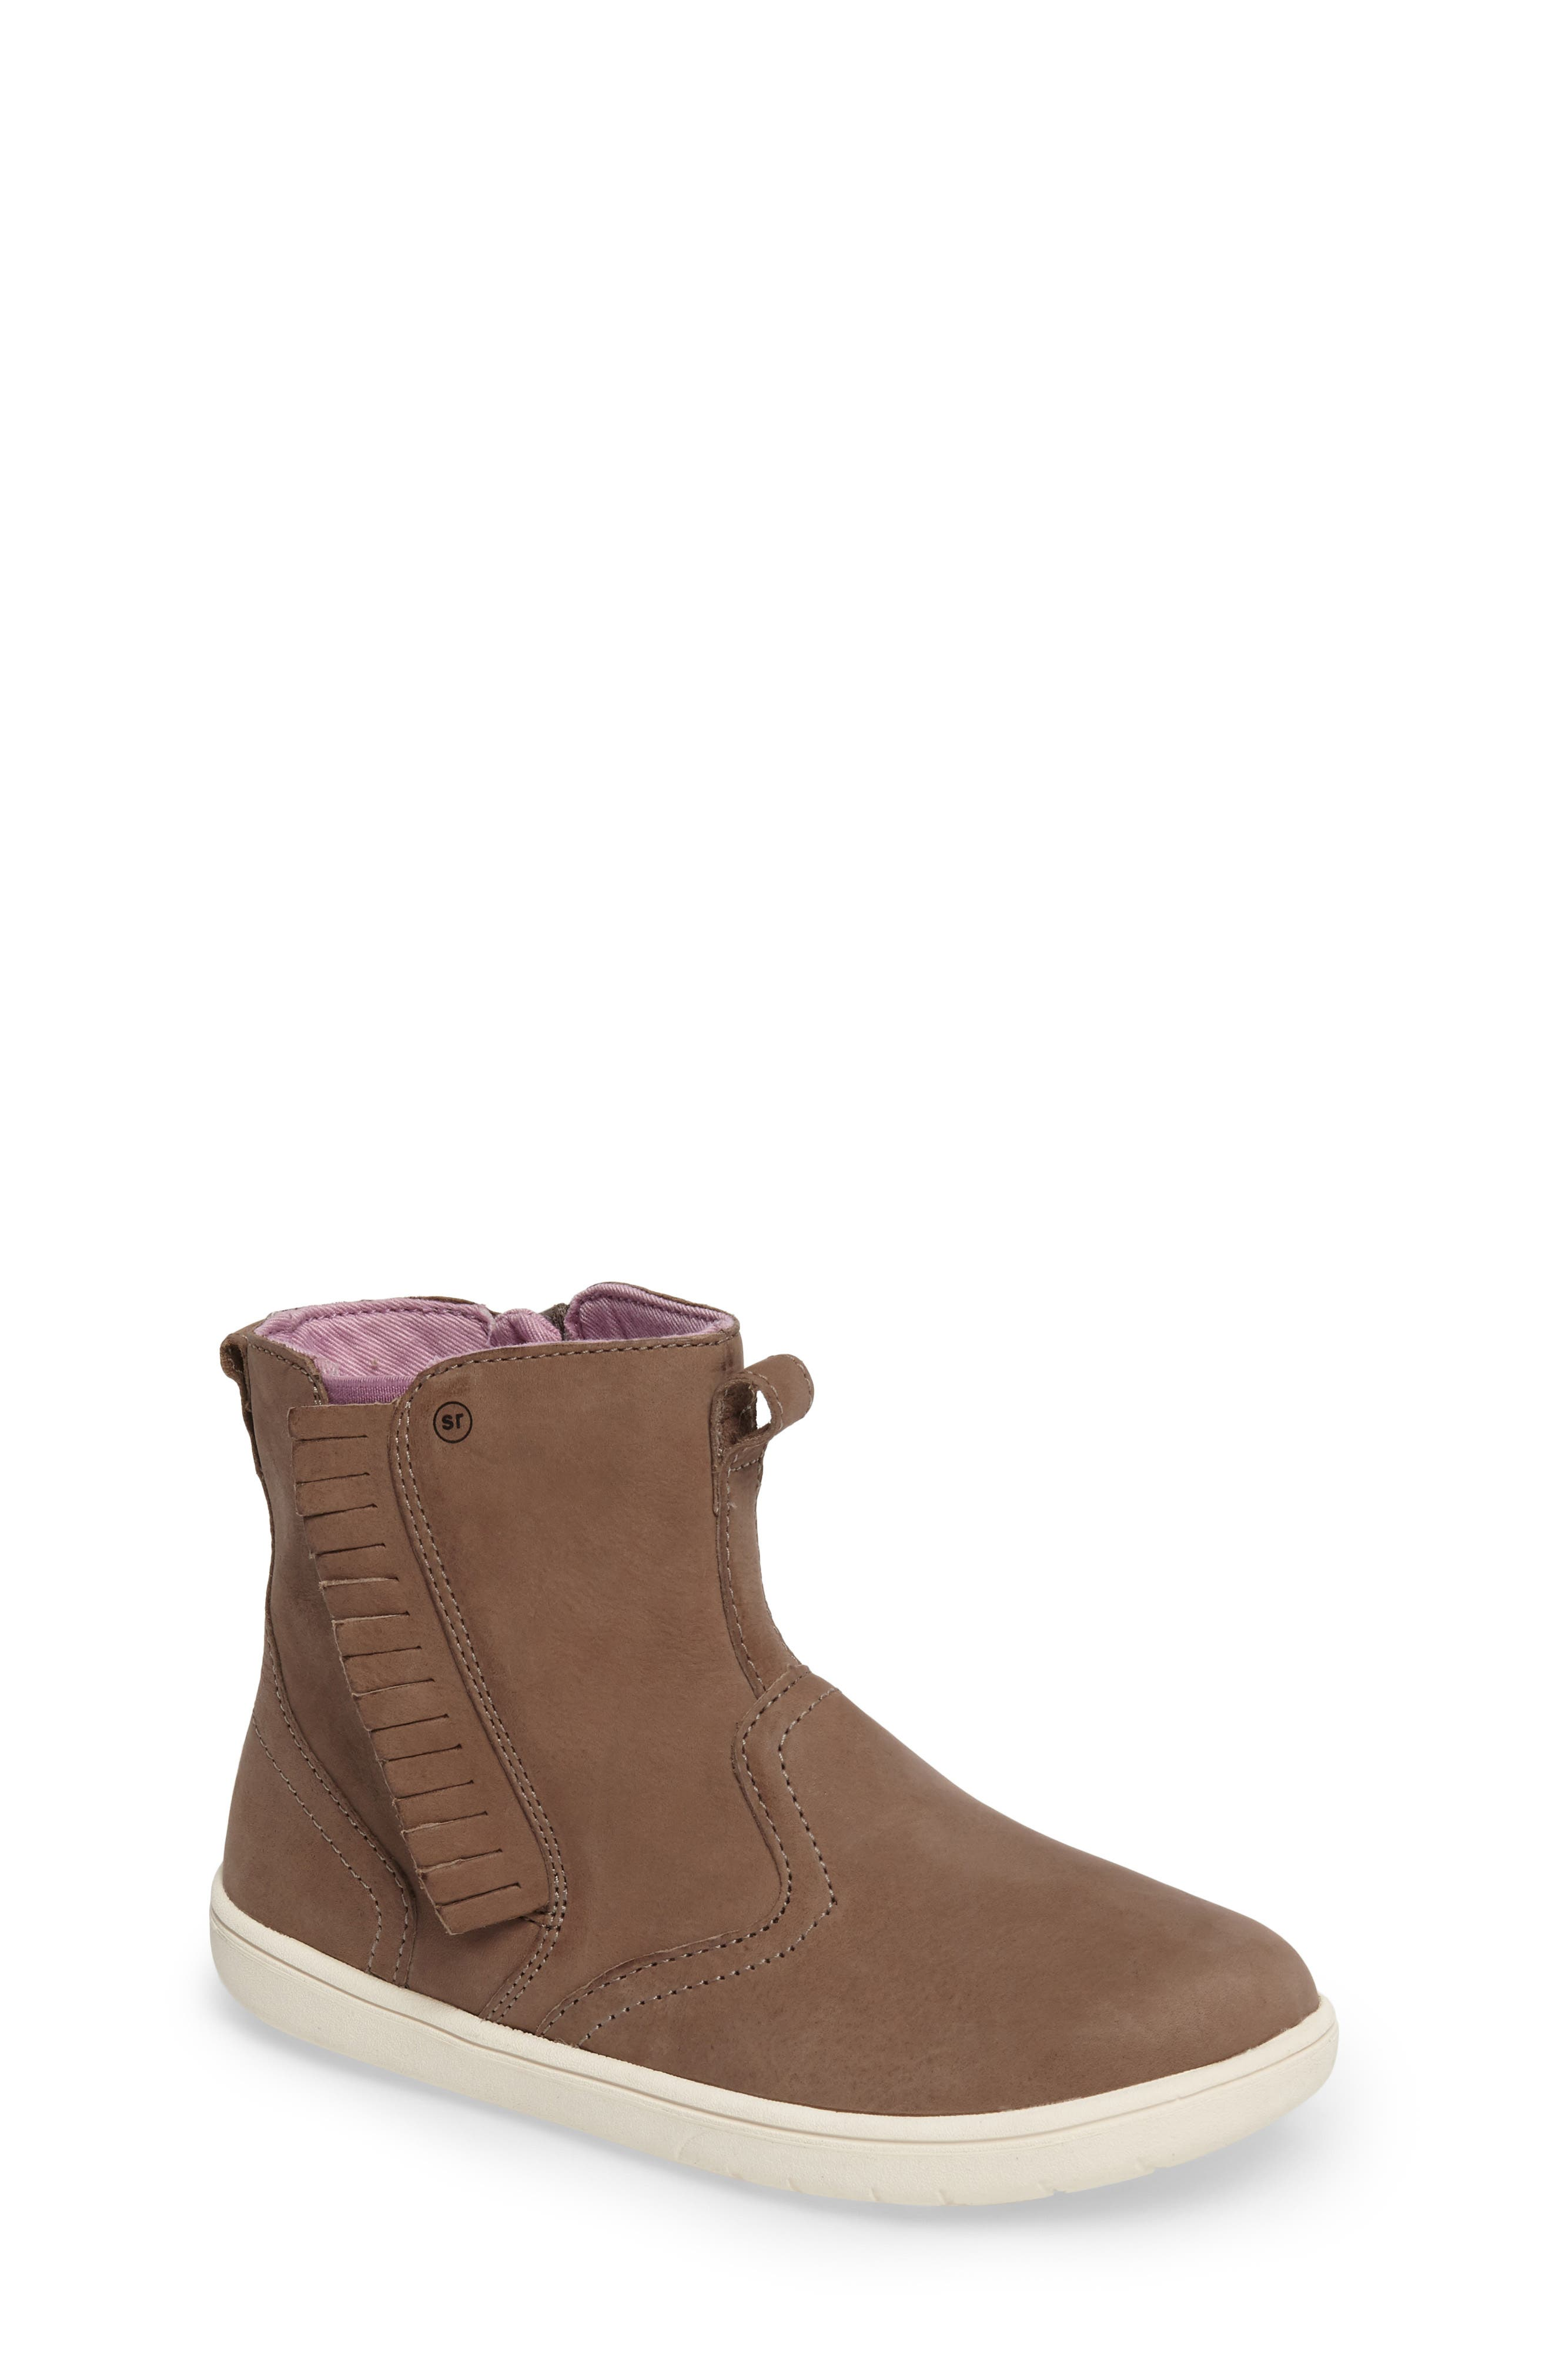 SRtech<sup>™</sup> Maxine Fringed Bootie,                         Main,                         color,